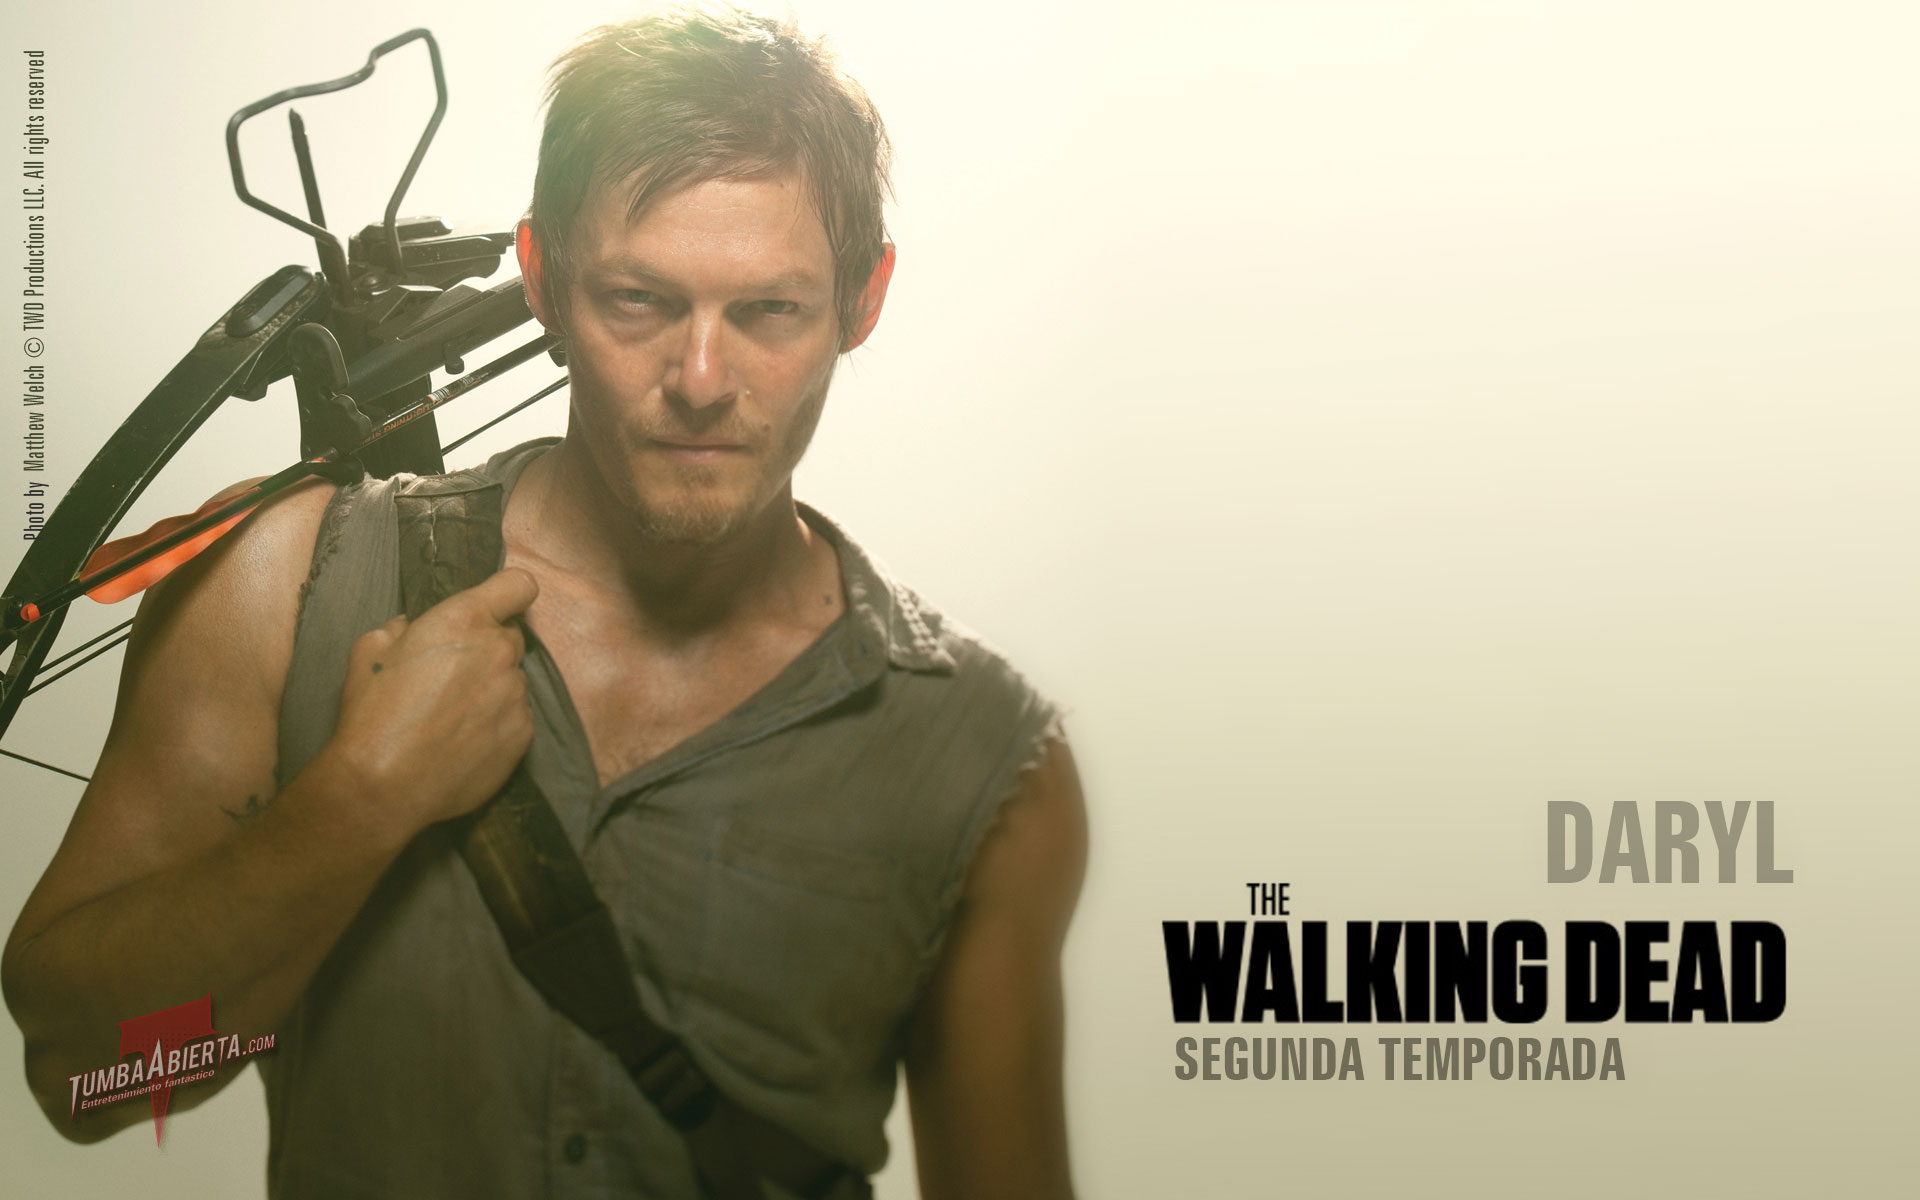 TV Show - The Walking Dead Norman Reedus Daryl Dixon Wallpaper